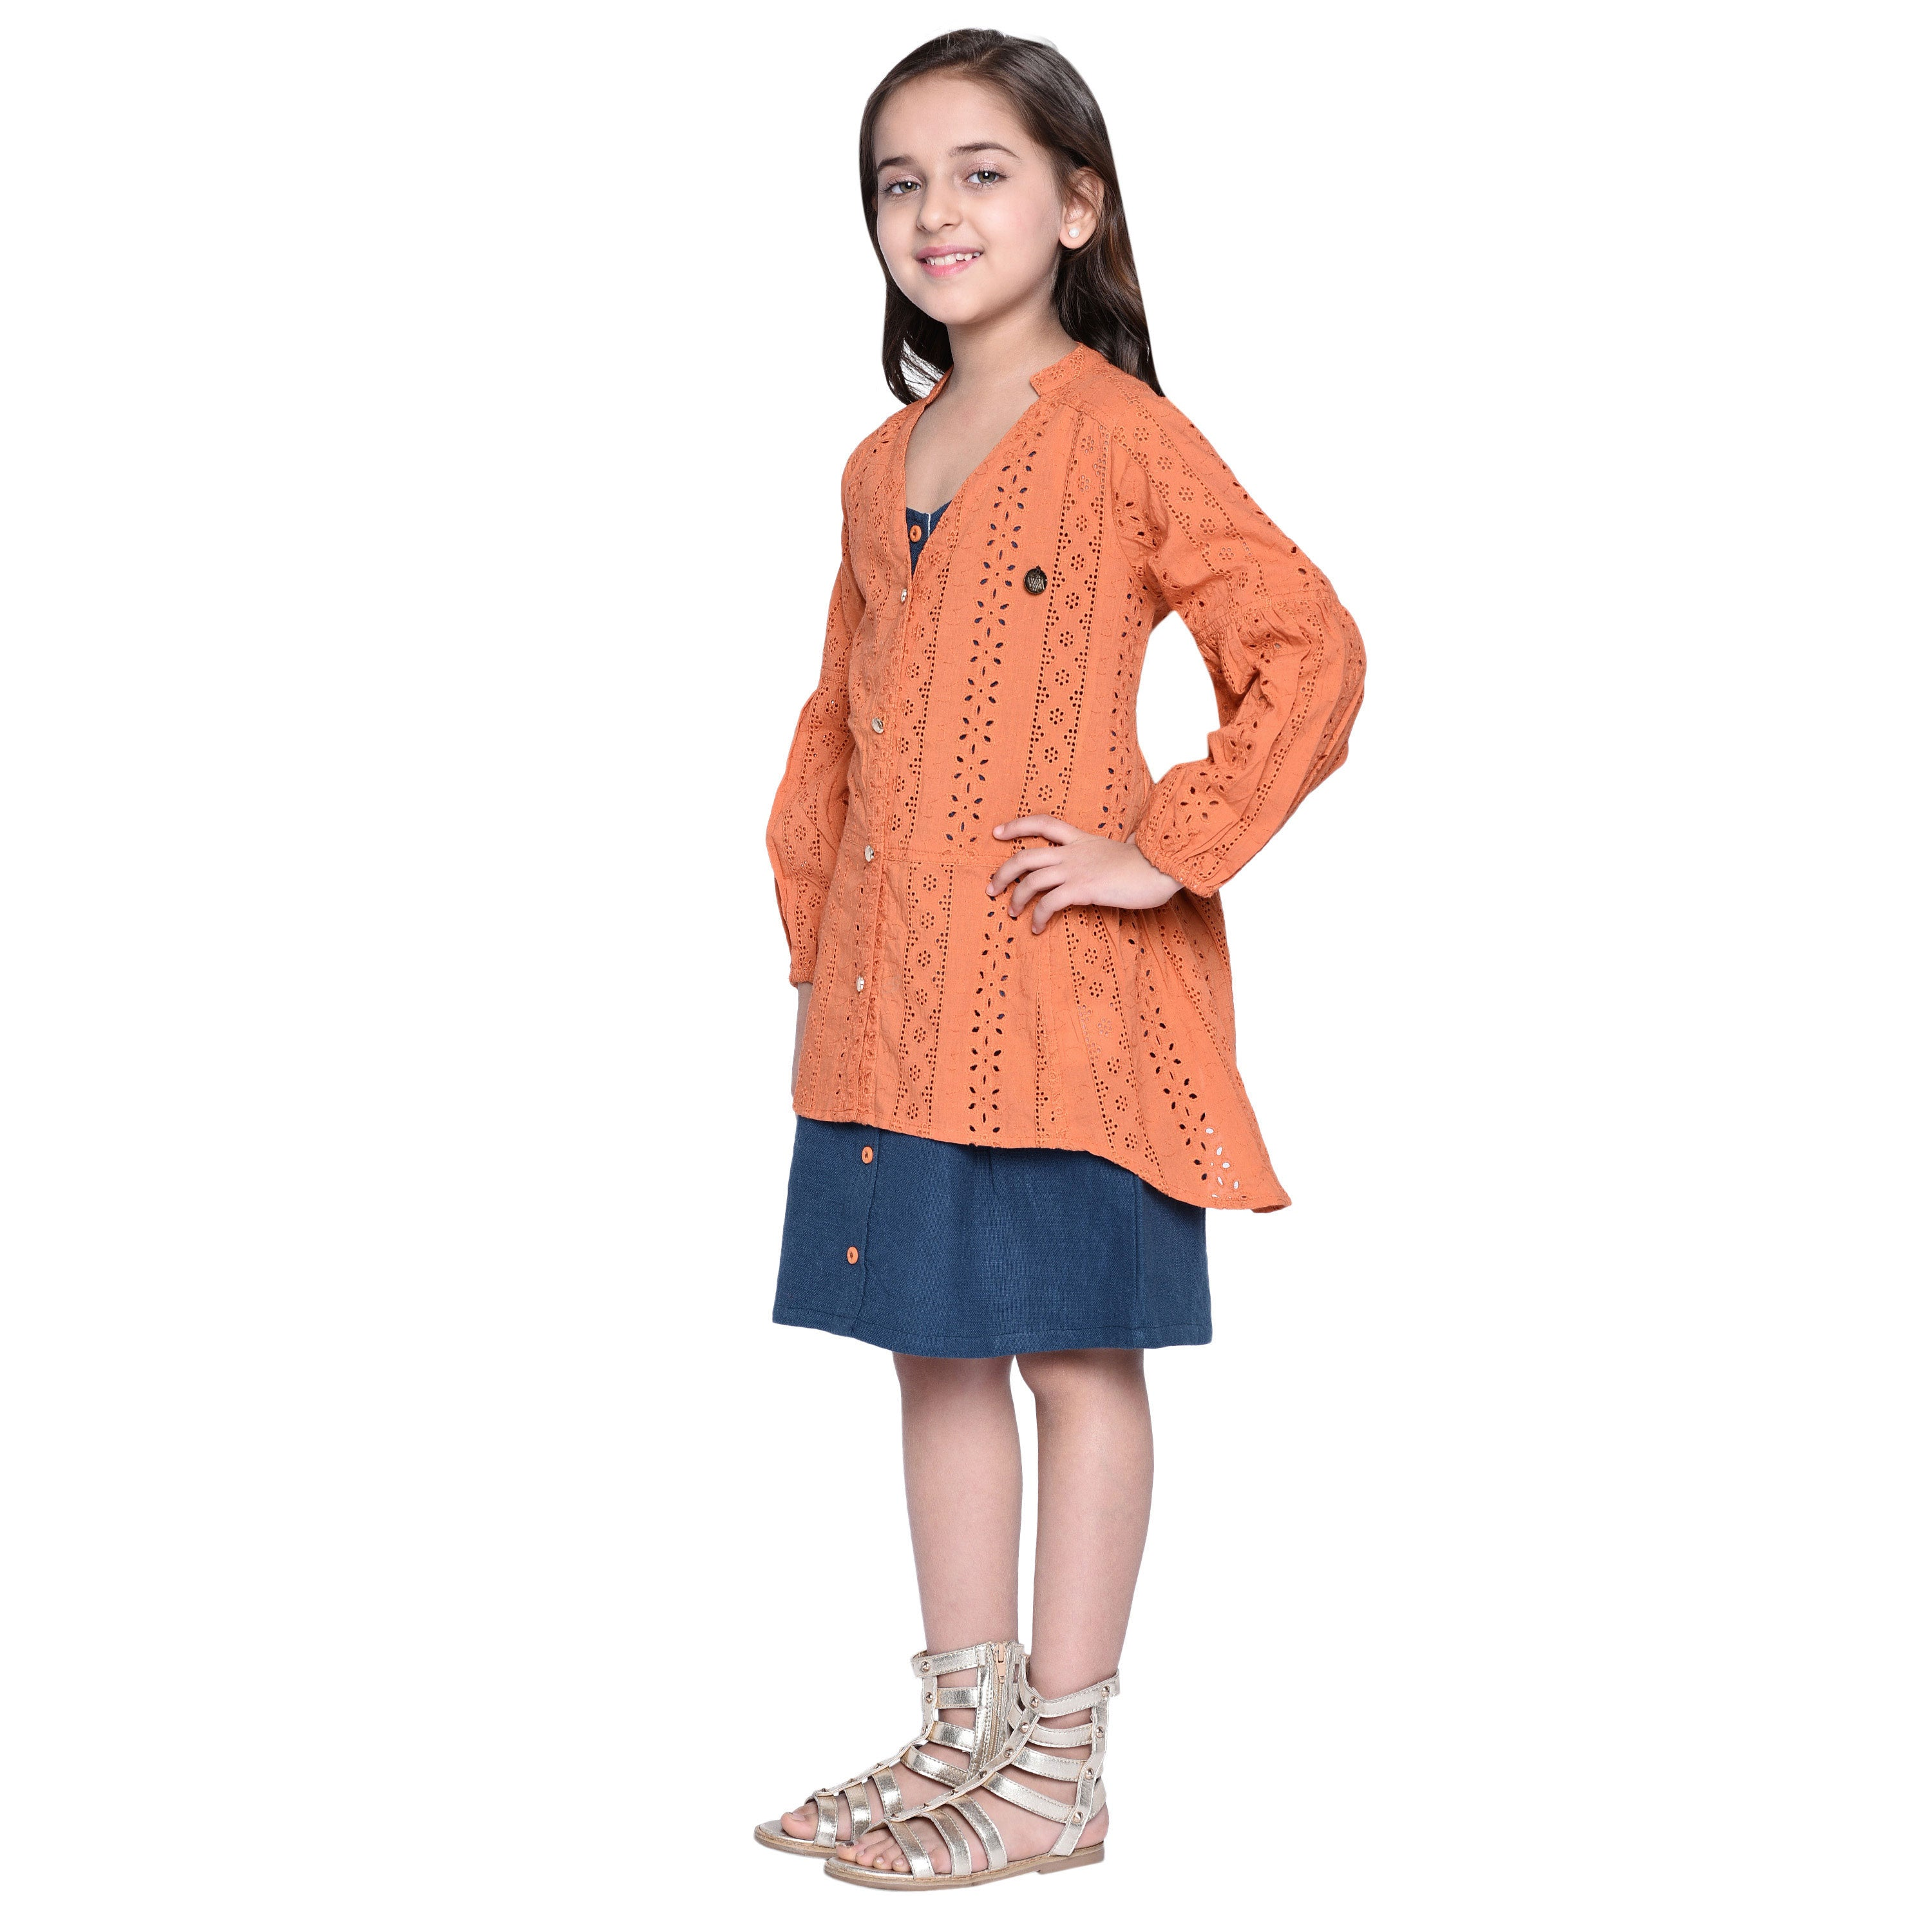 Matilda4 Dress with Shrug Set for Girls